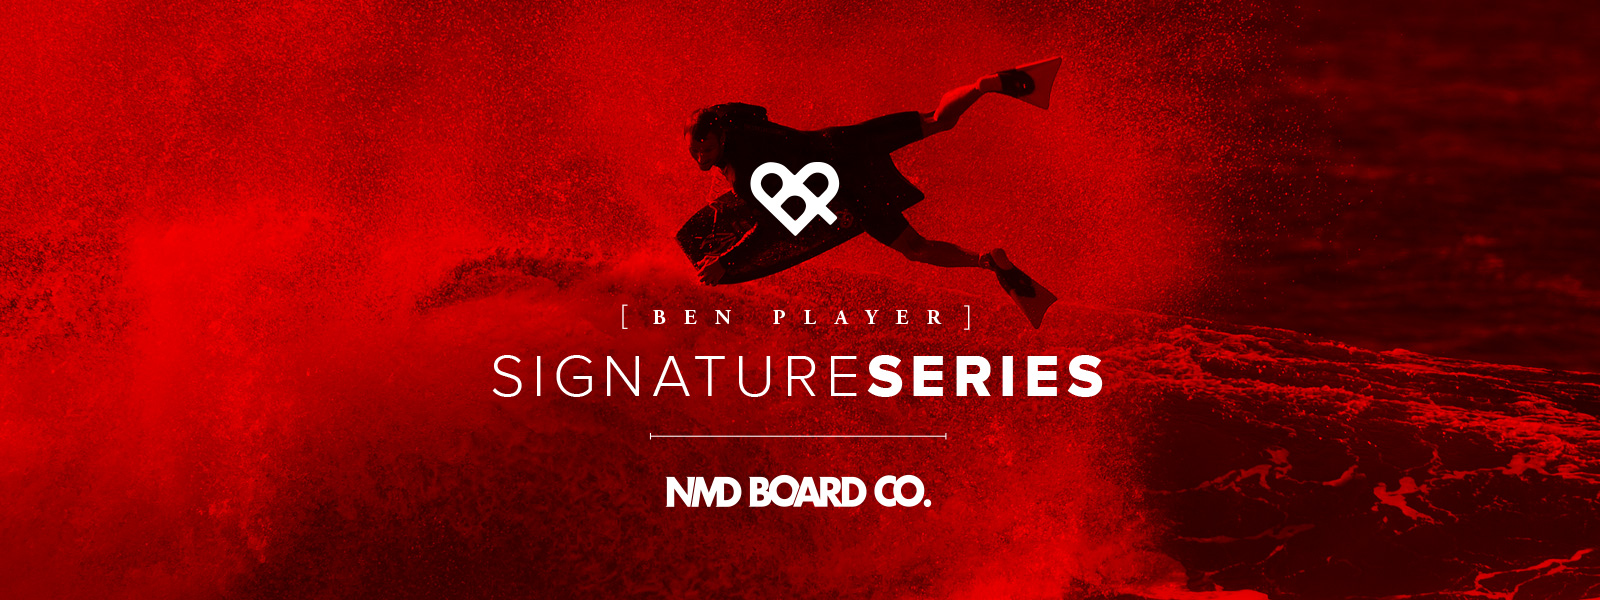 NMD-SIGNATURE_BP